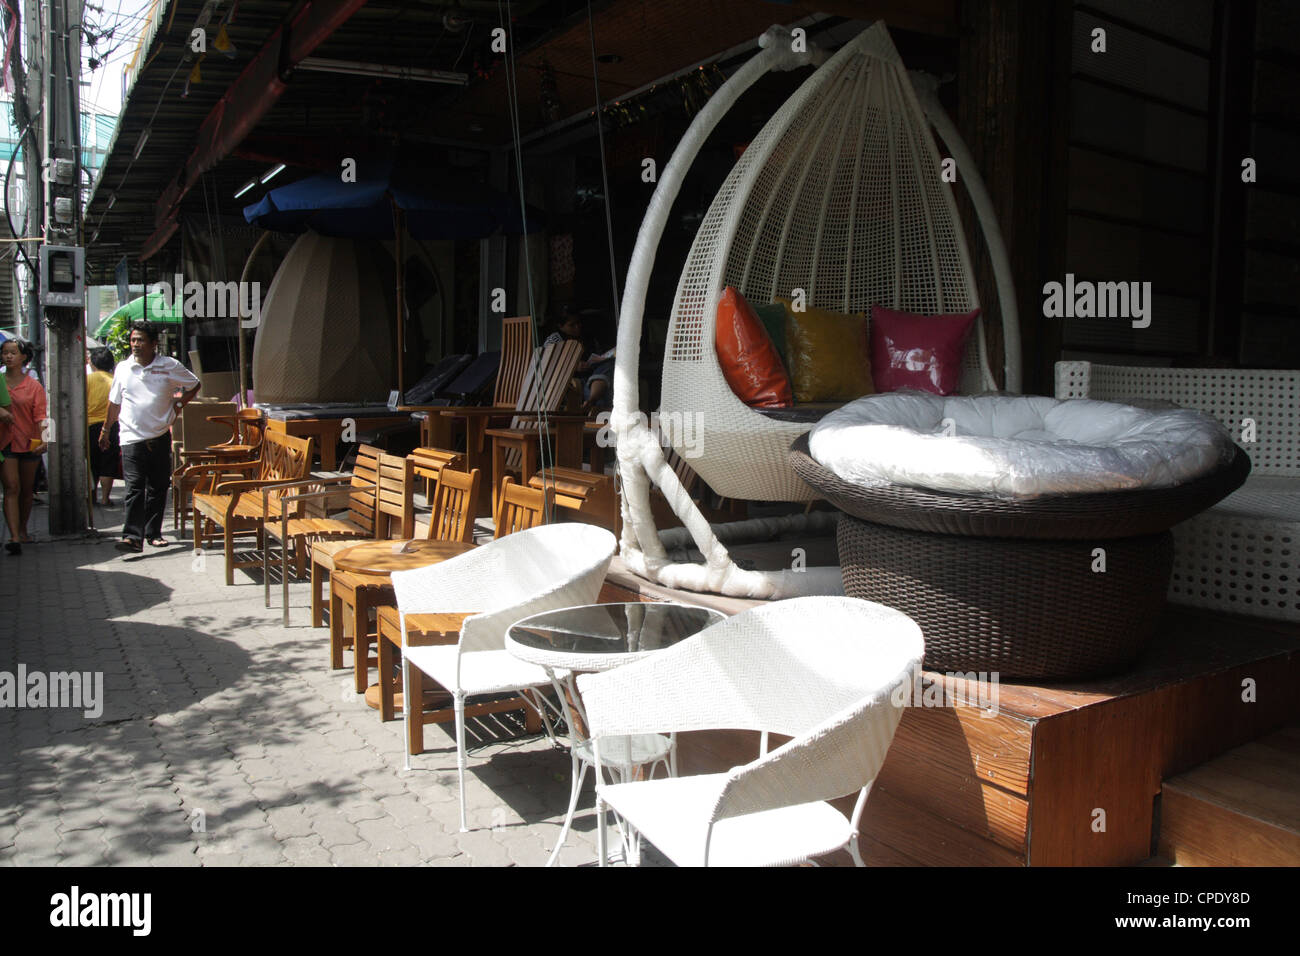 Furniture and home decorations shop in chatuchak weekend market bangkok